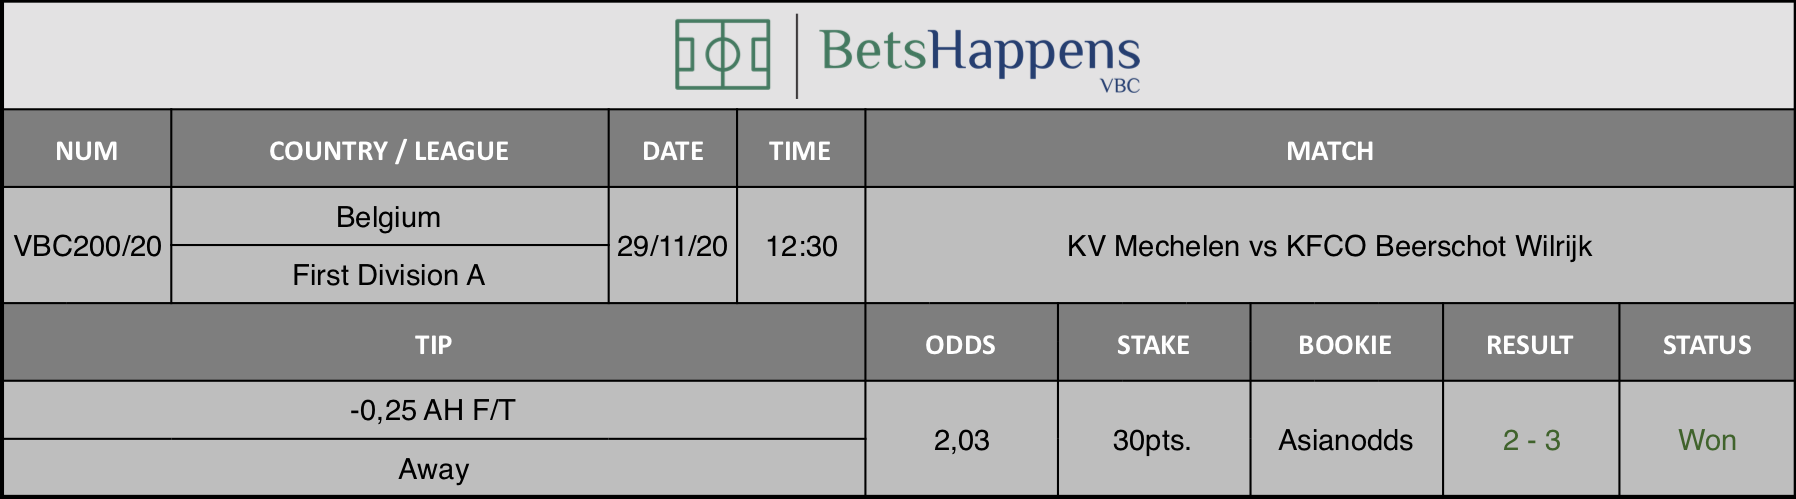 Results of our tip for the KV Mechelen vs KFCO Beerschot Wilrijk match where -0,25 AH F/T Away is recommended.